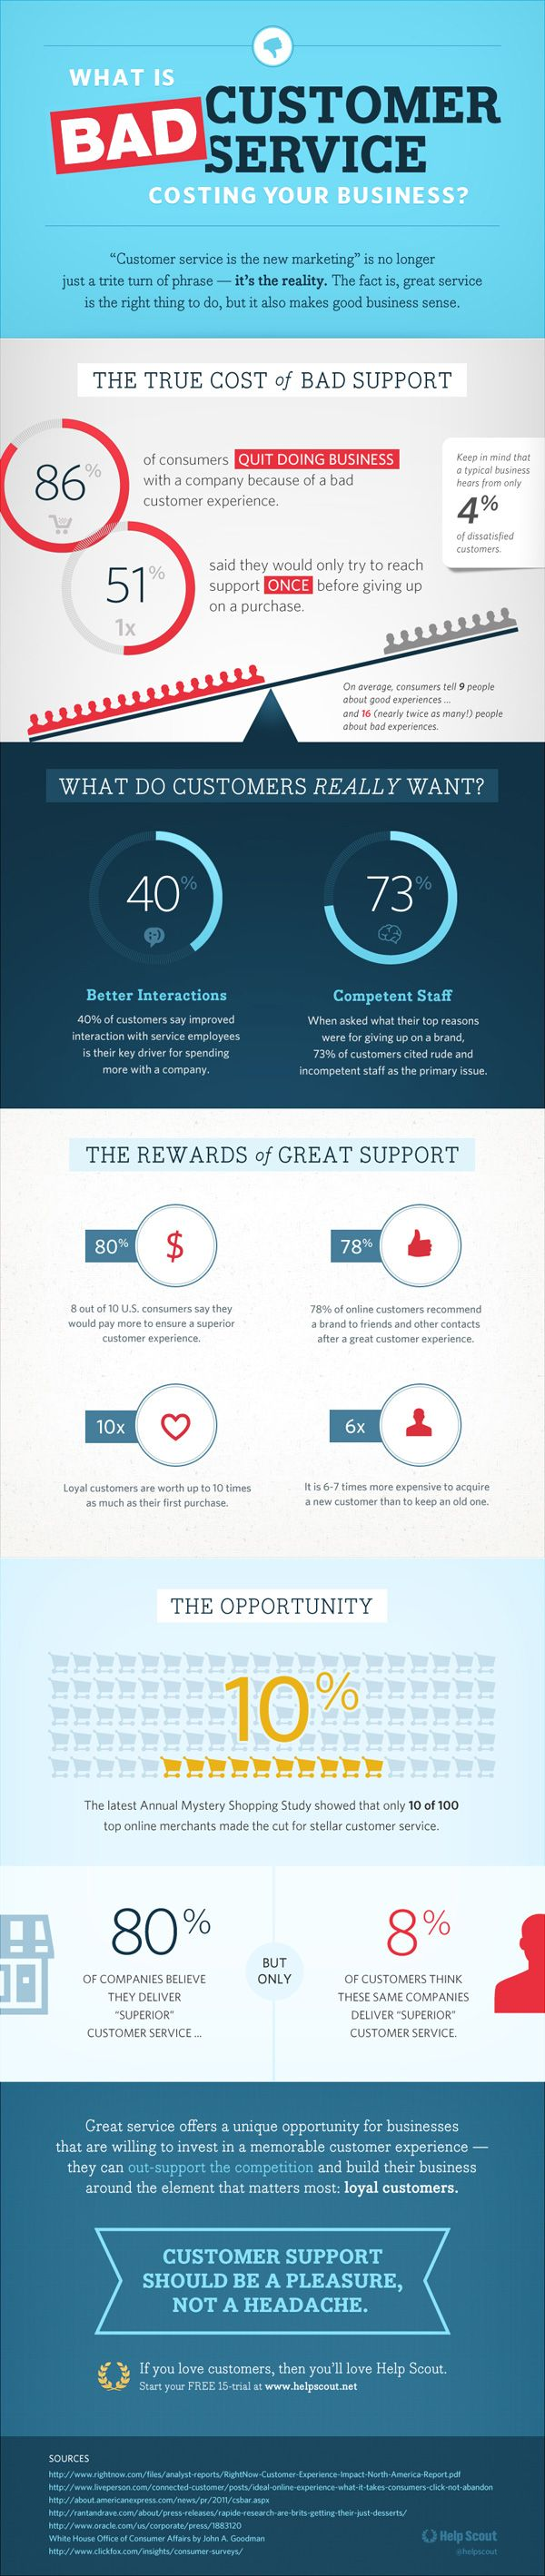 The True Cost Of Bad Customer Service [Infographic]